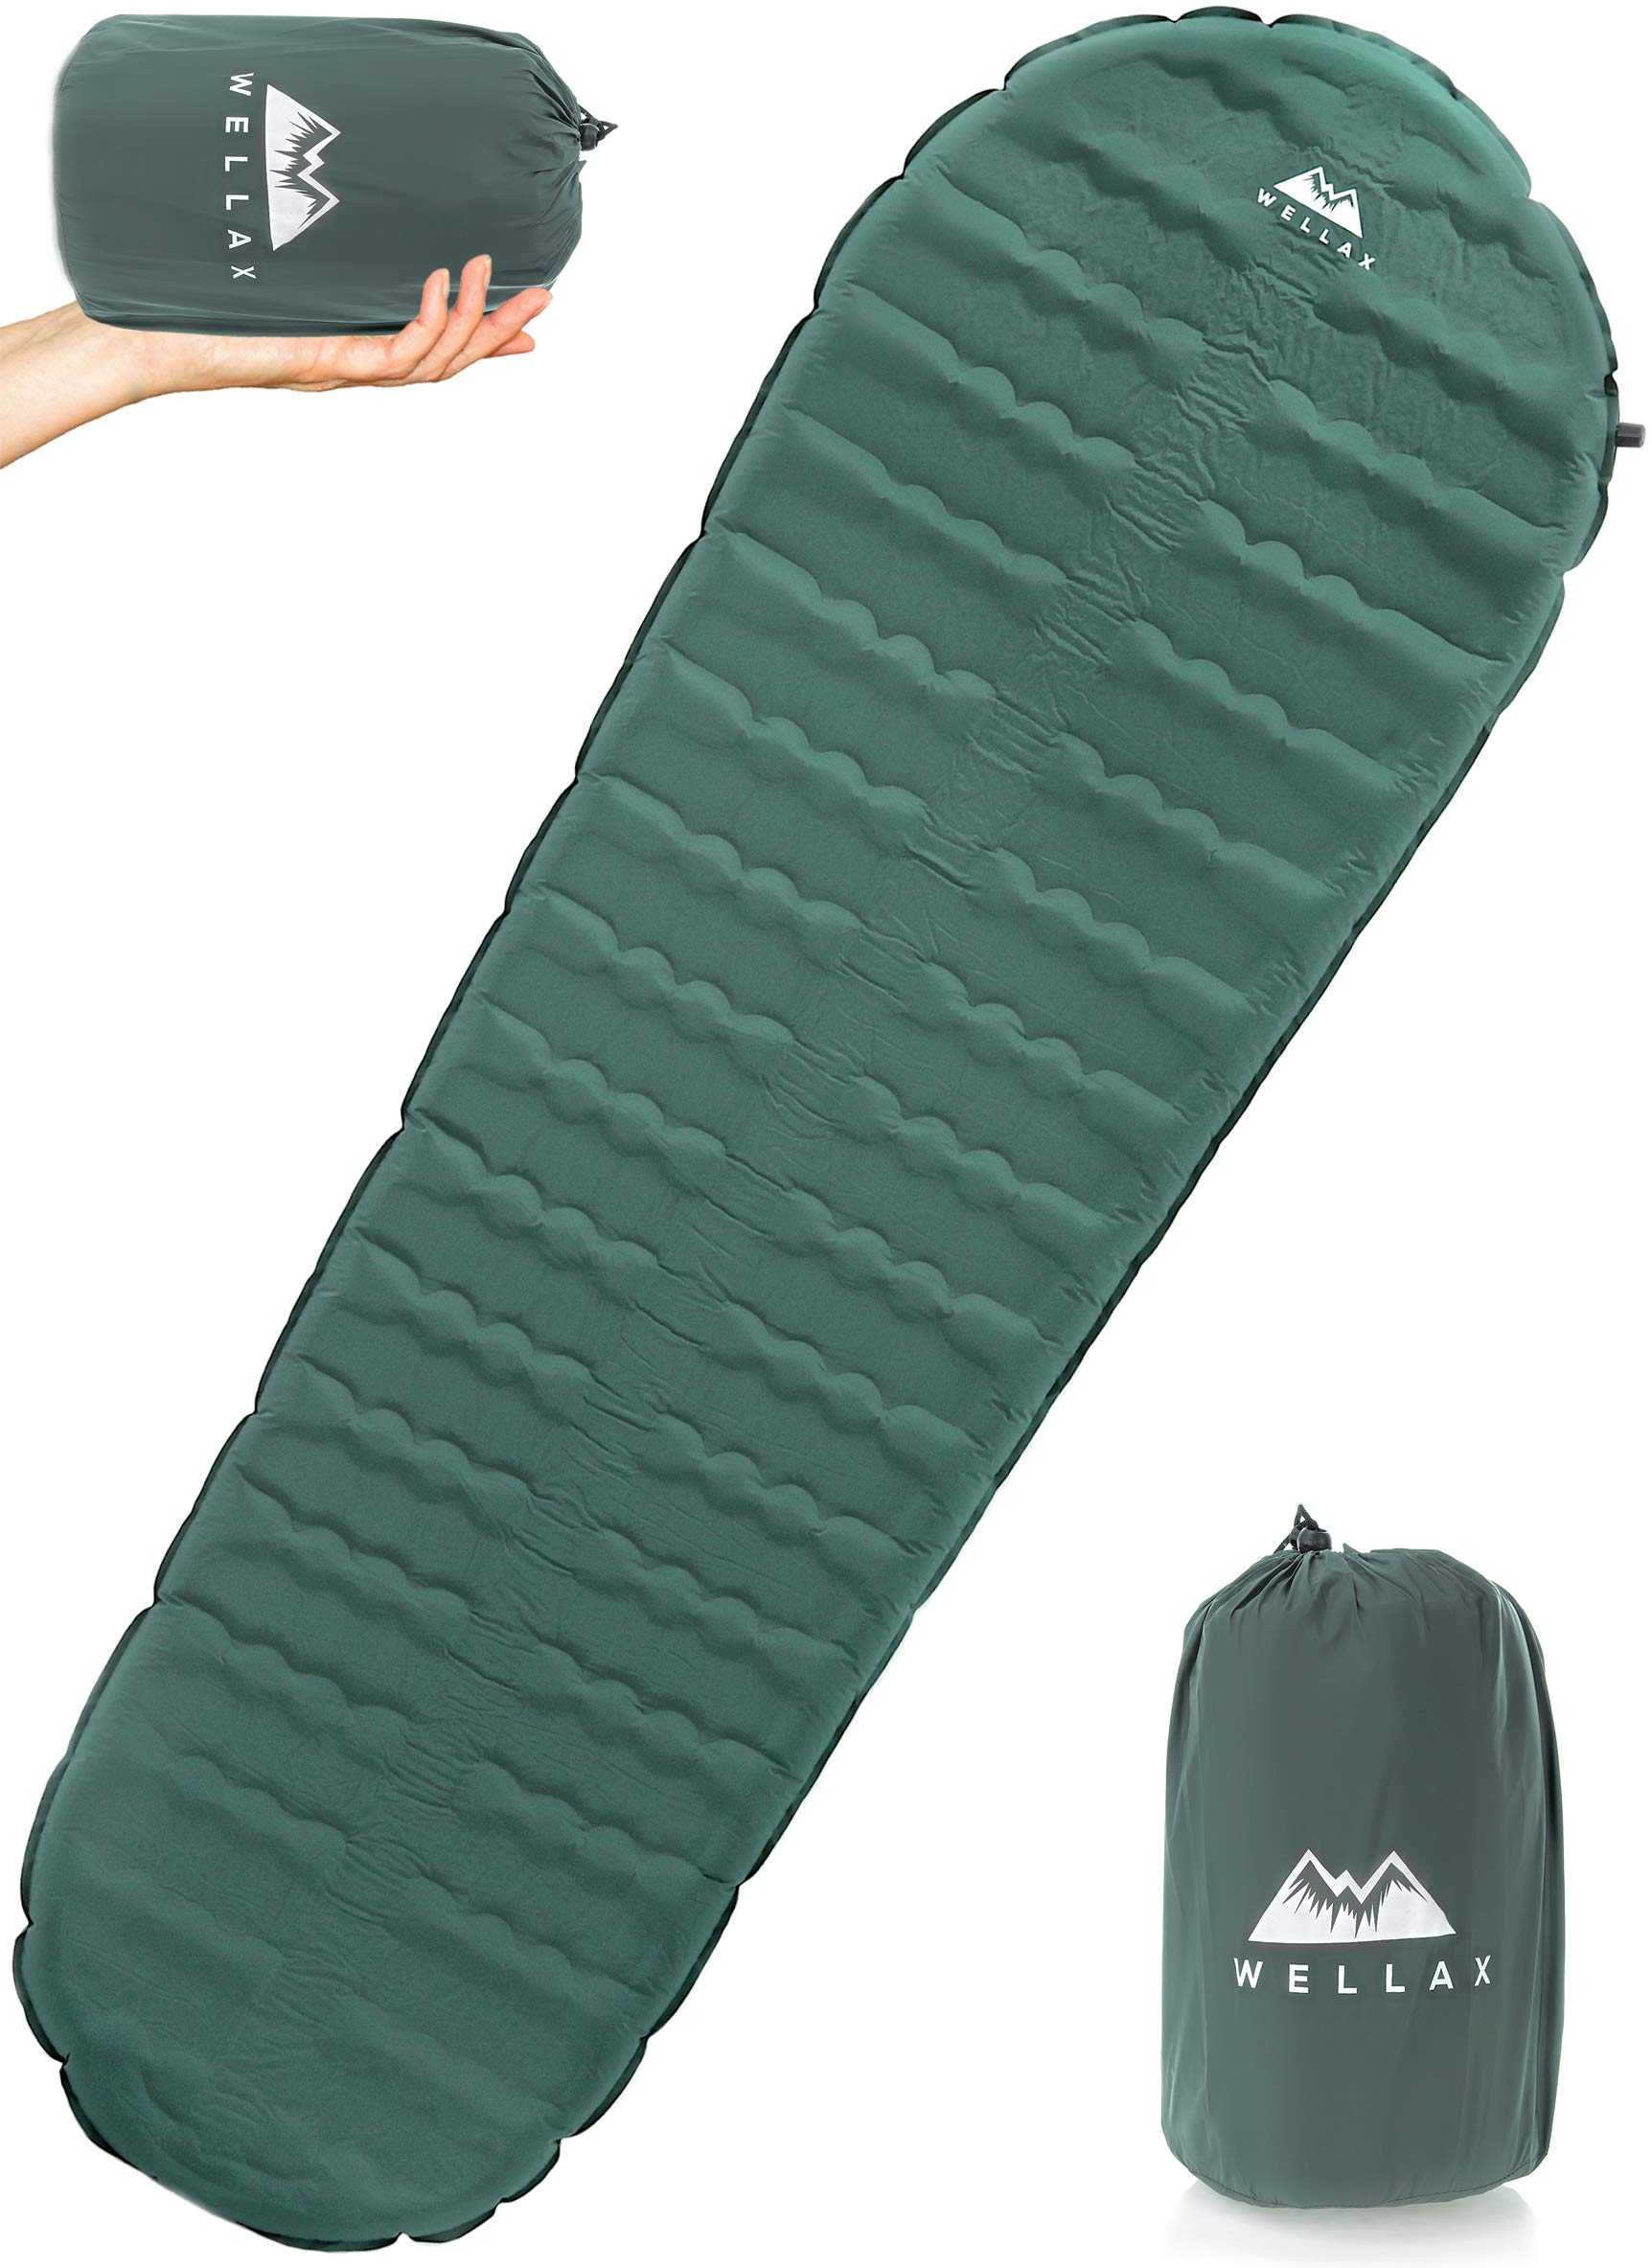 WELLAX Ultralight Self Inflating Sleeping Pad for Camping - Best Inflatable Camping Mat for Backpacking, Traveling and Hiking - Hybrid Camp Mattress with Foam Frame (X-Large - 74 x 24 x 2.5 inches) by WELLAX